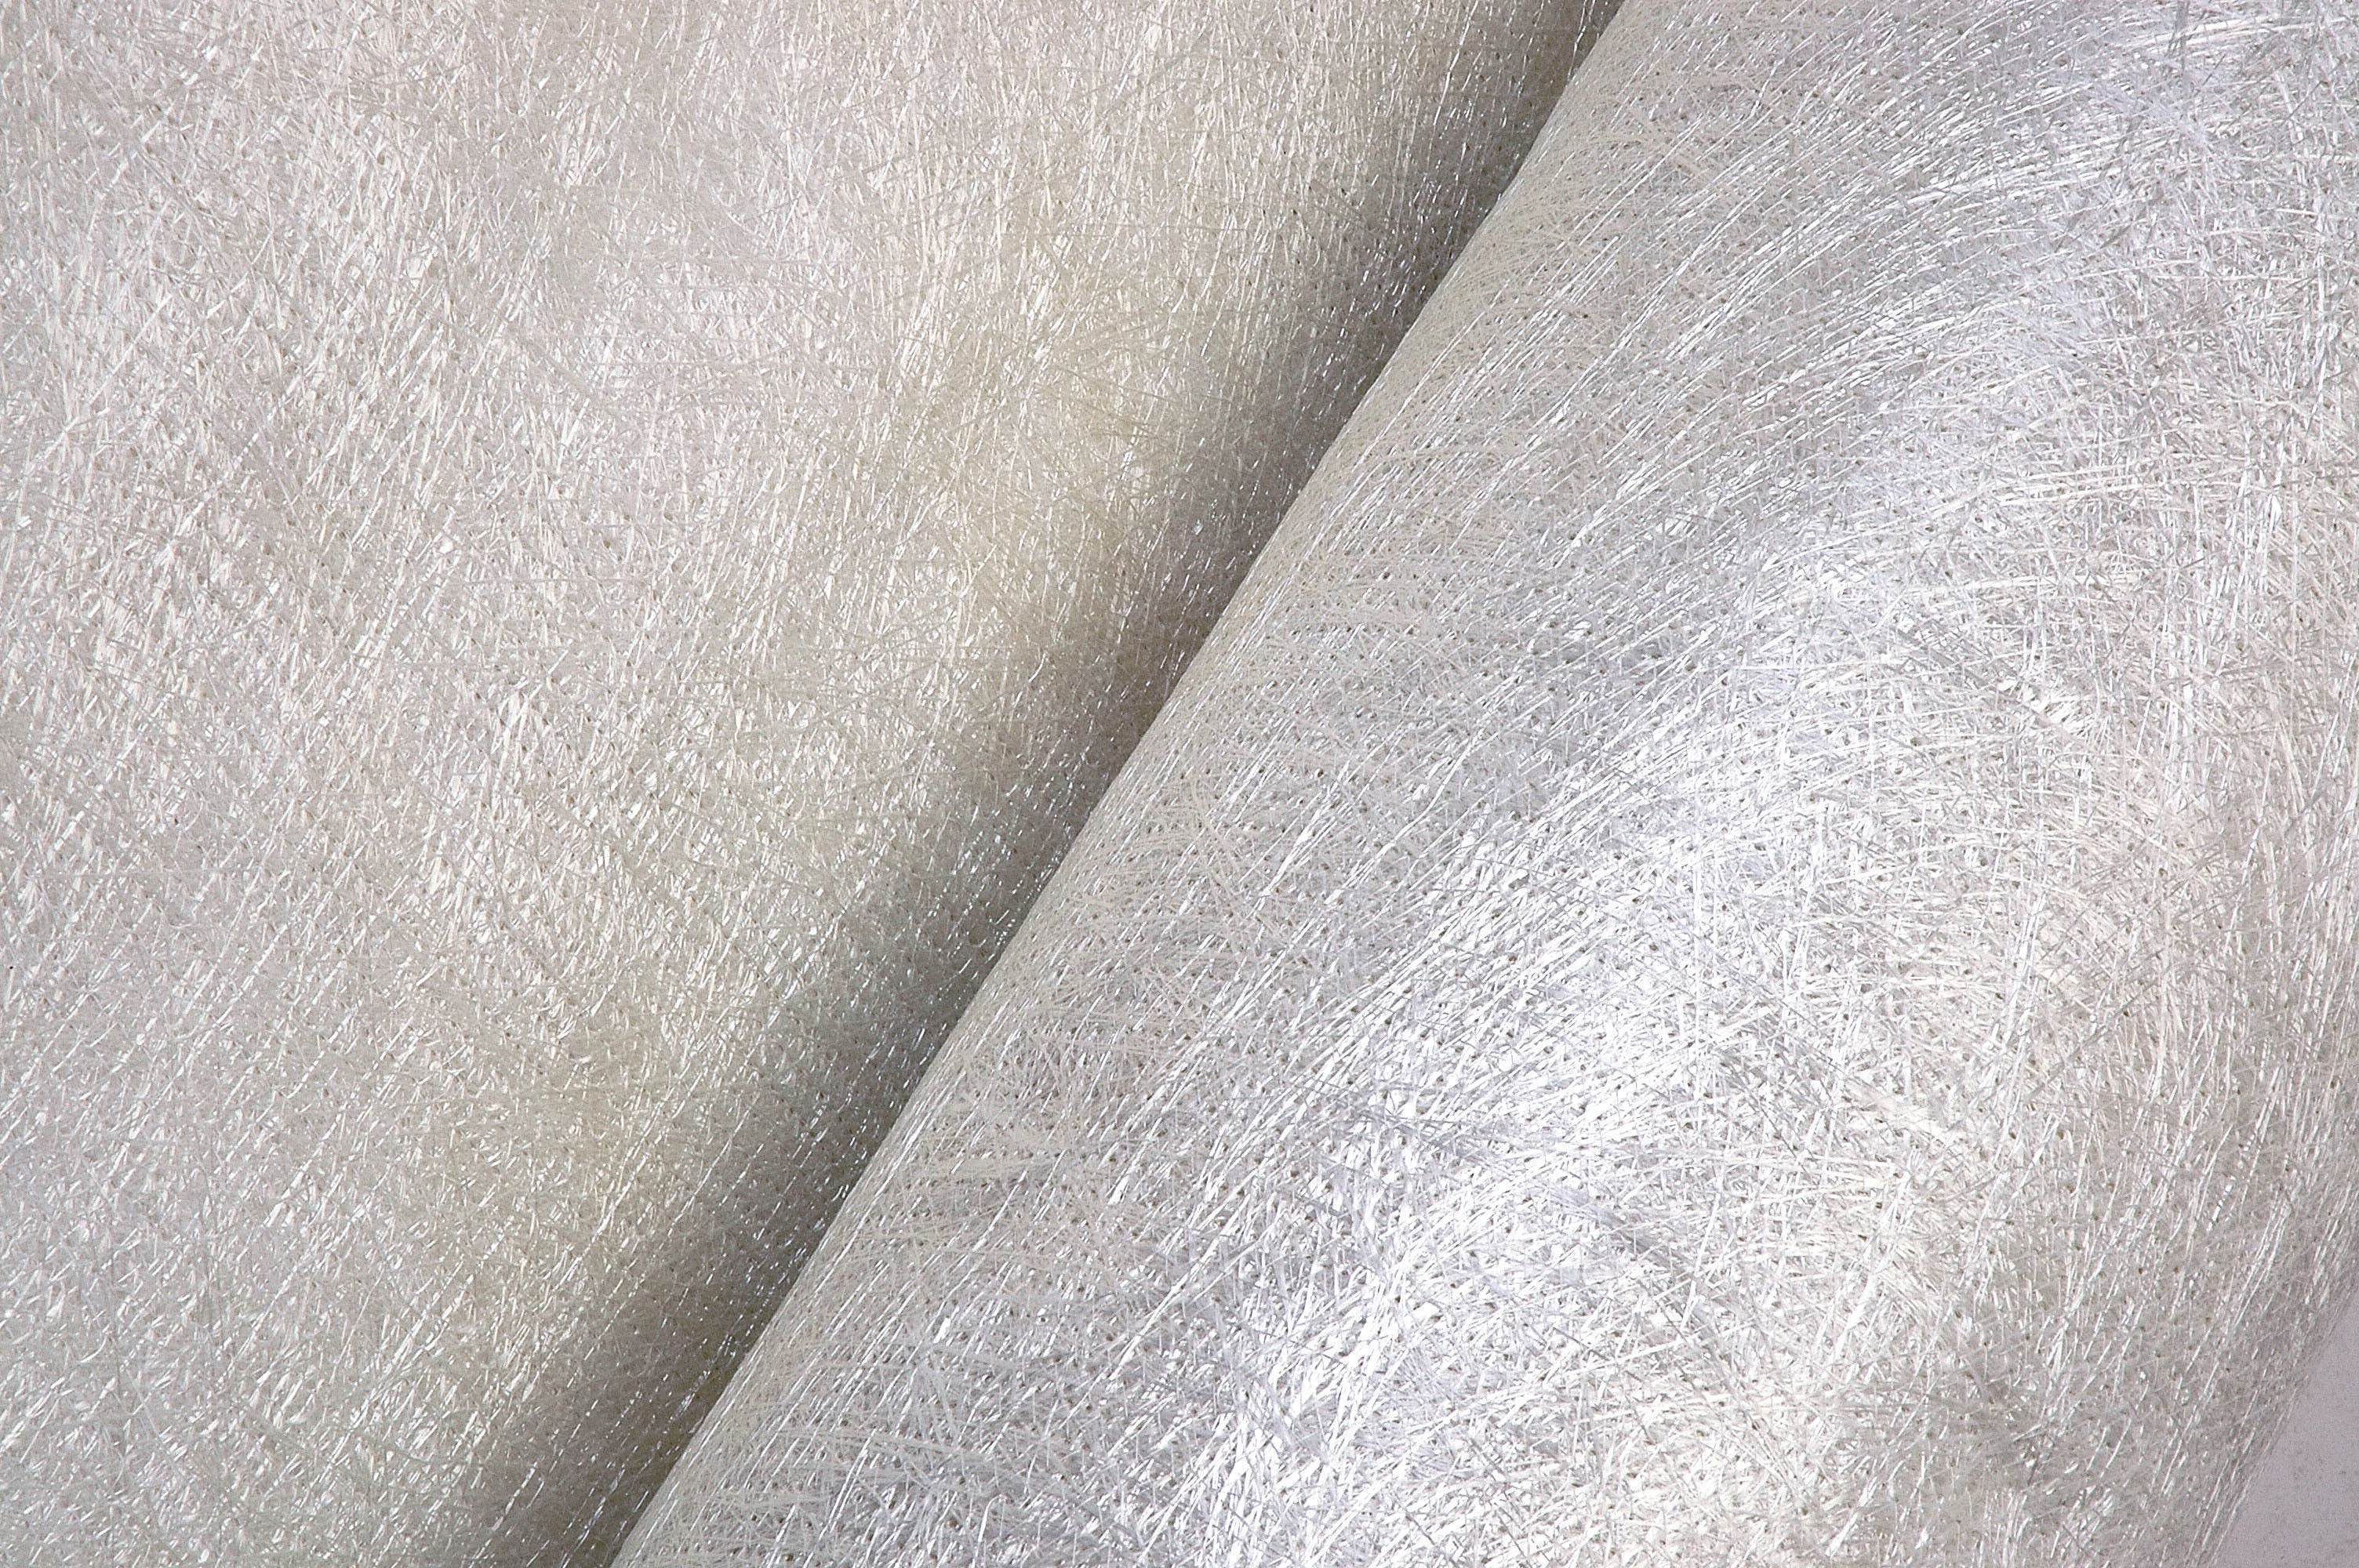 close up of nonwoven